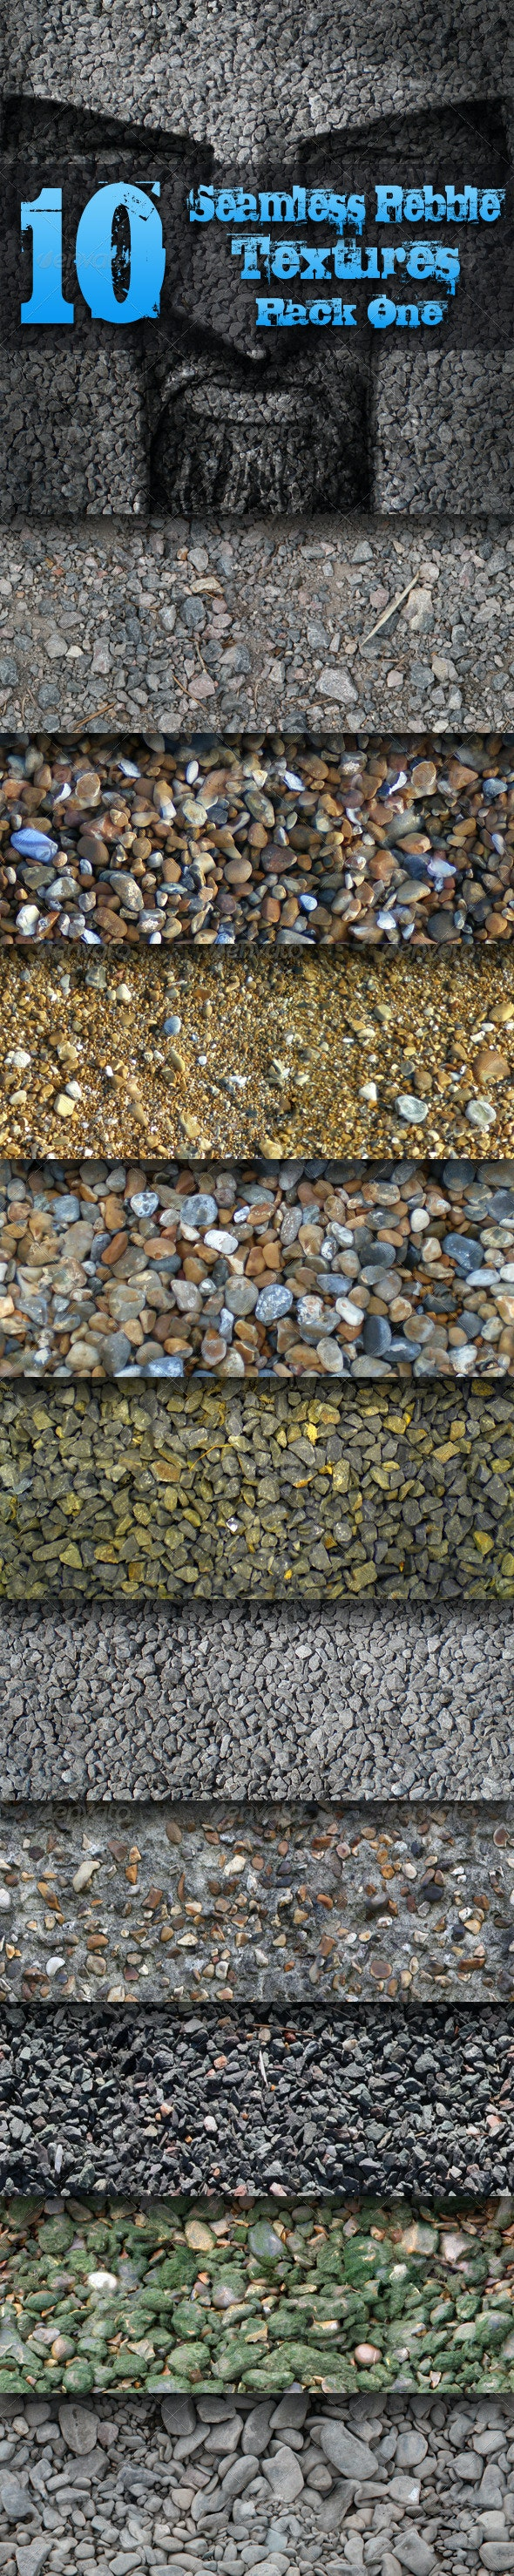 10 Seamless Pebble Textures - Pack One - Stone Textures